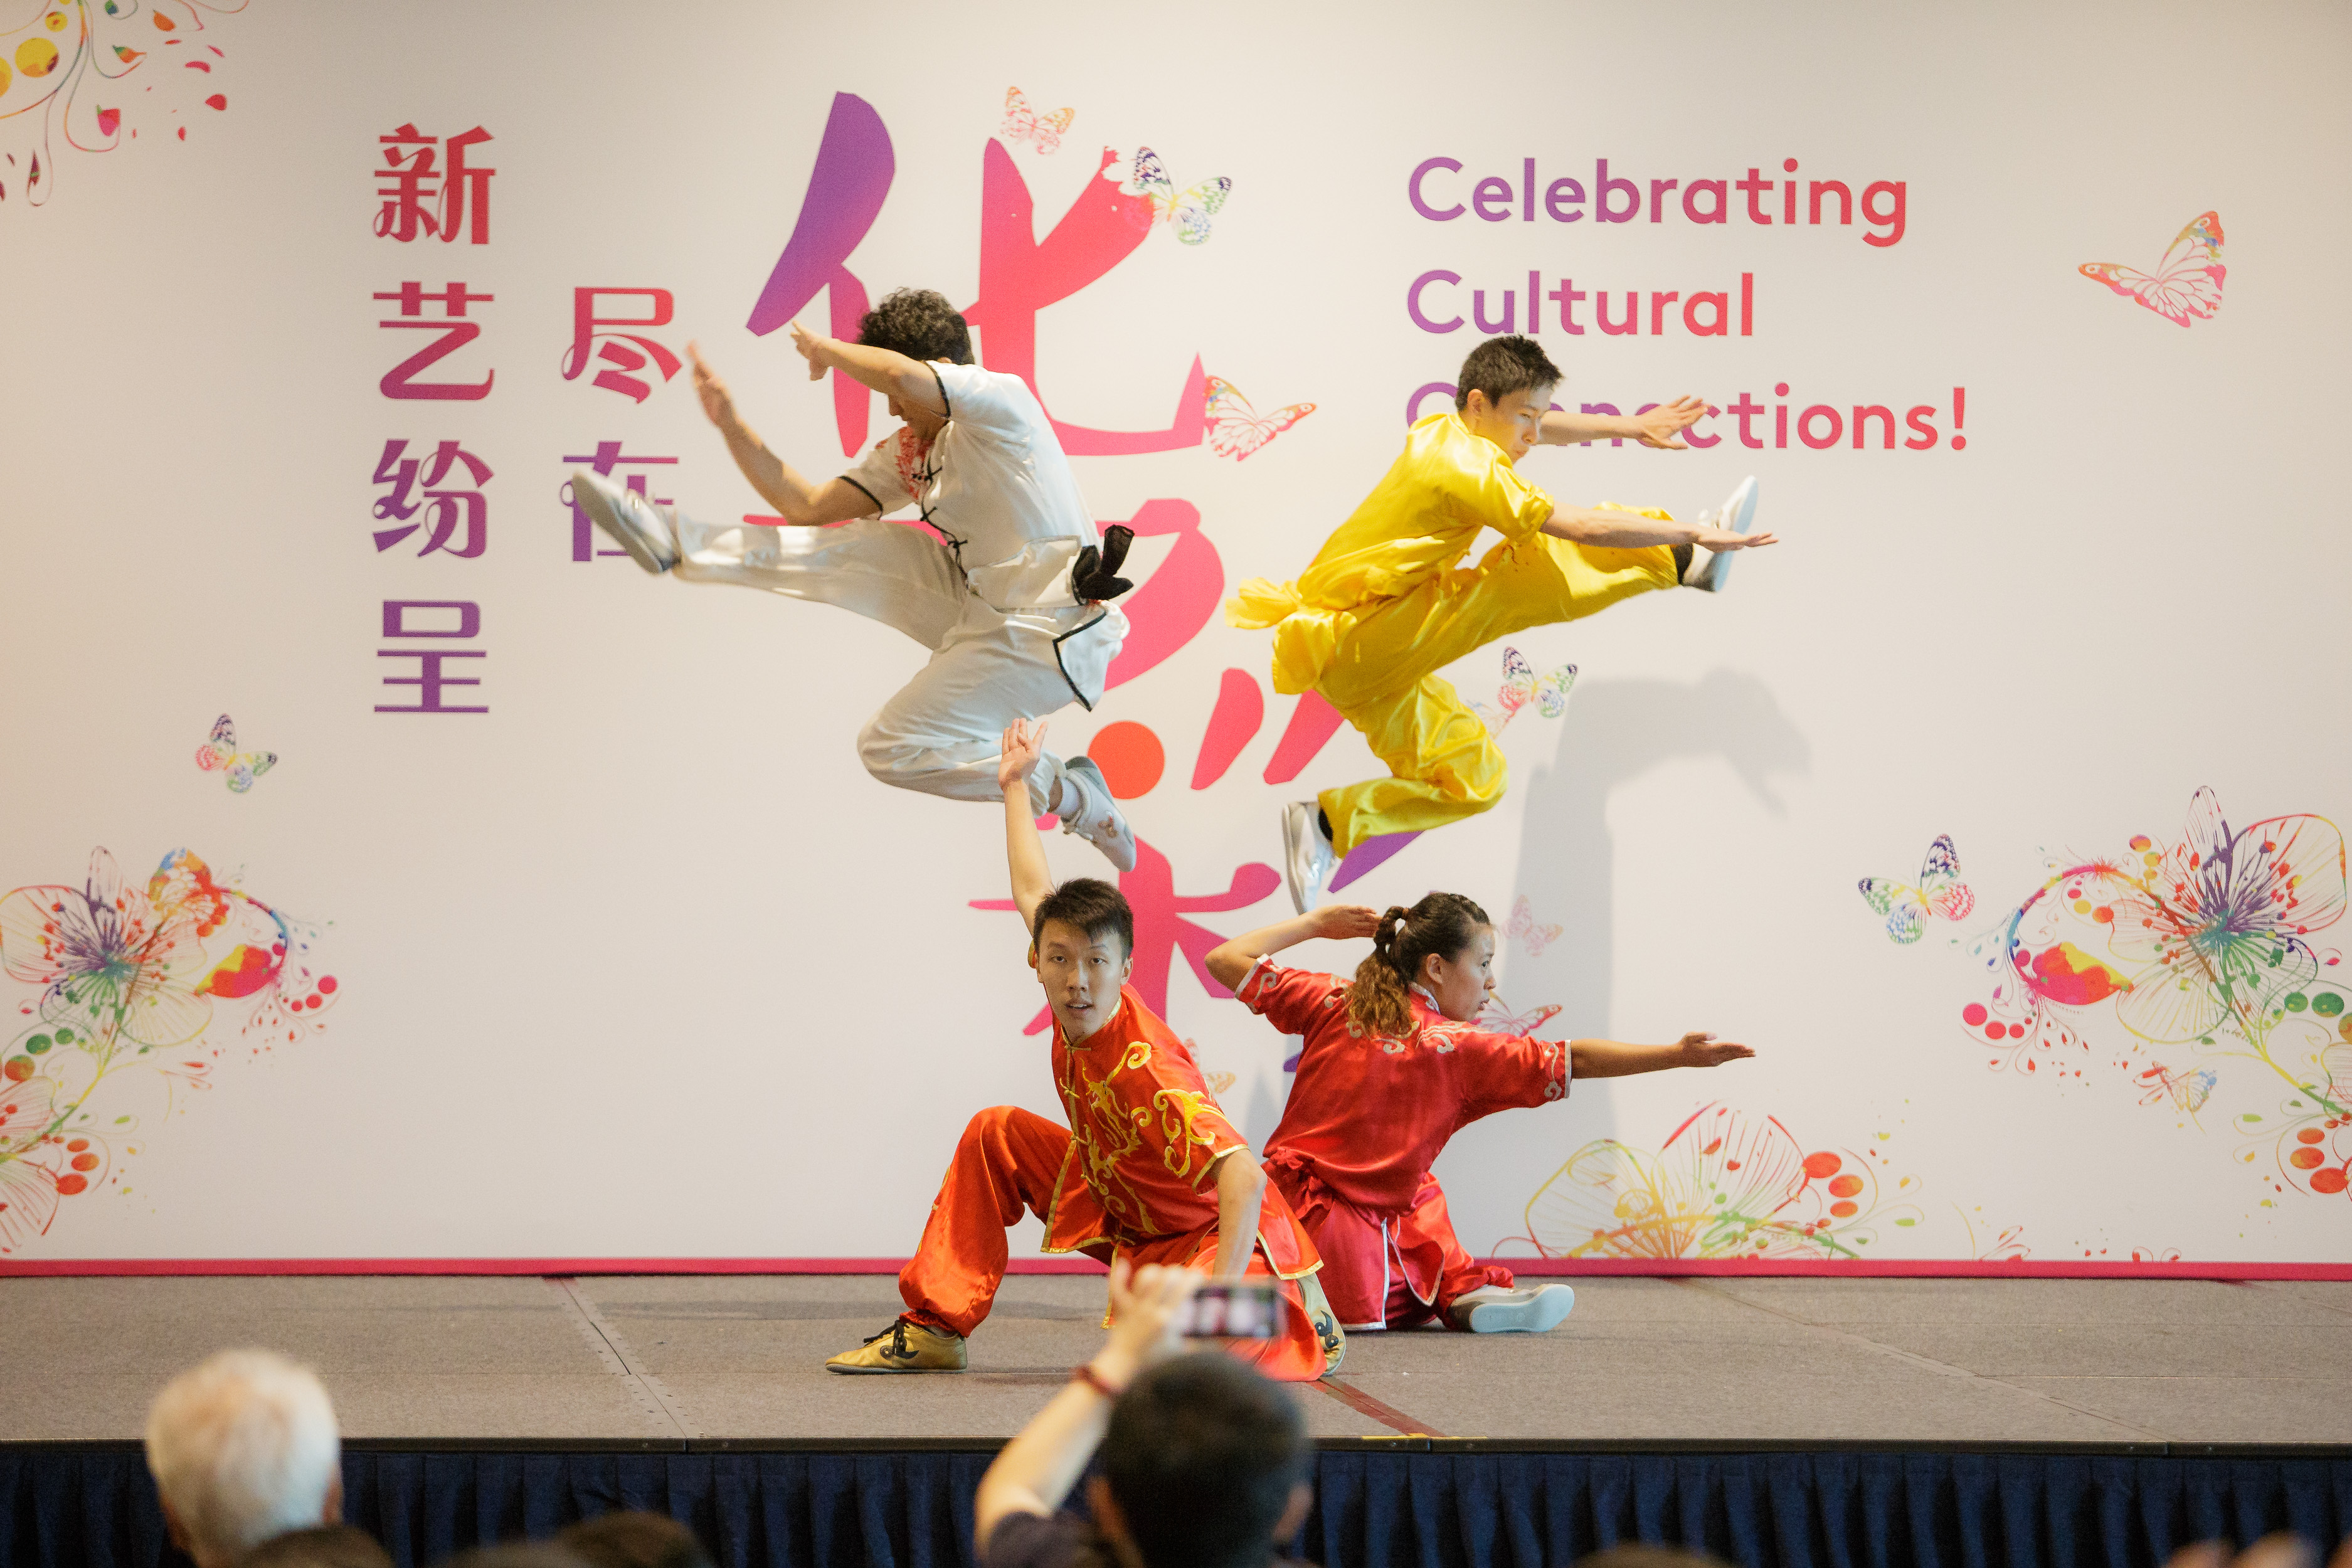 20190819 Singapore Chinese Cultural Centre 1.jpg